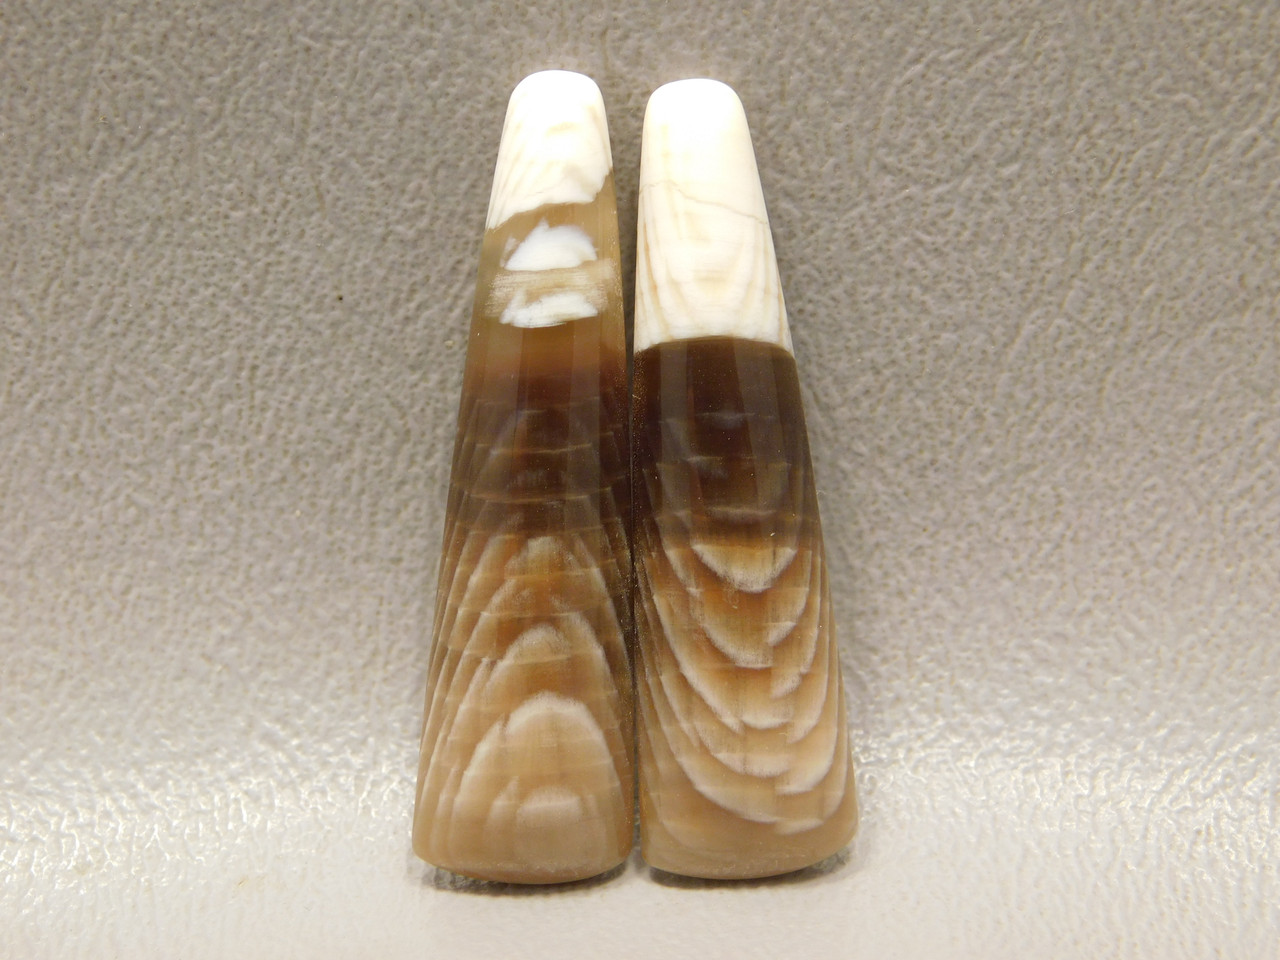 Petrified Sycamore Matched Pair Cabochons Badger Pocket Fossil Wood #18